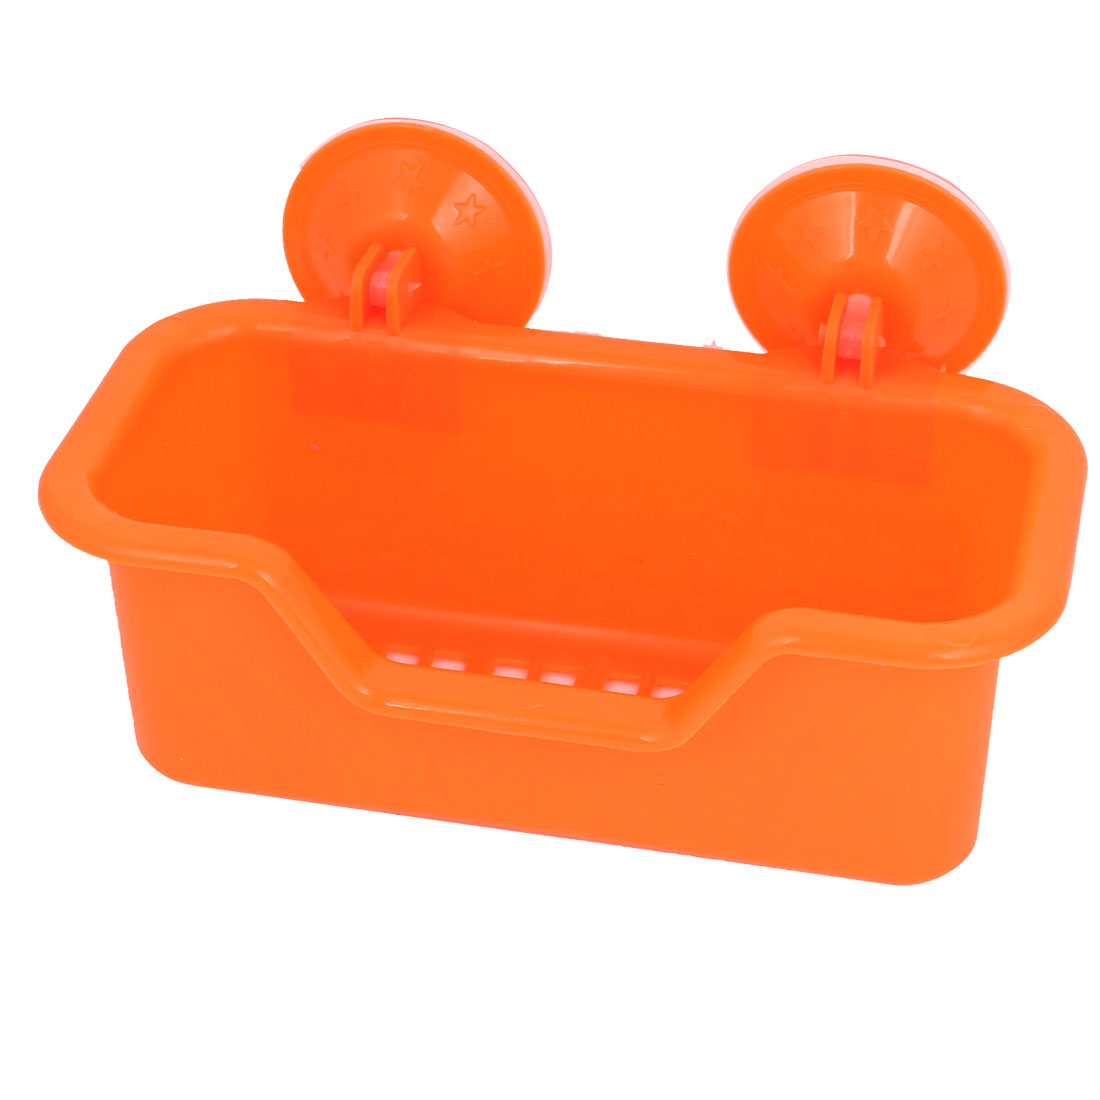 Bath Wall Basket Strong Suction Cup Absorption Holder Plastic Multi Shelf Orange